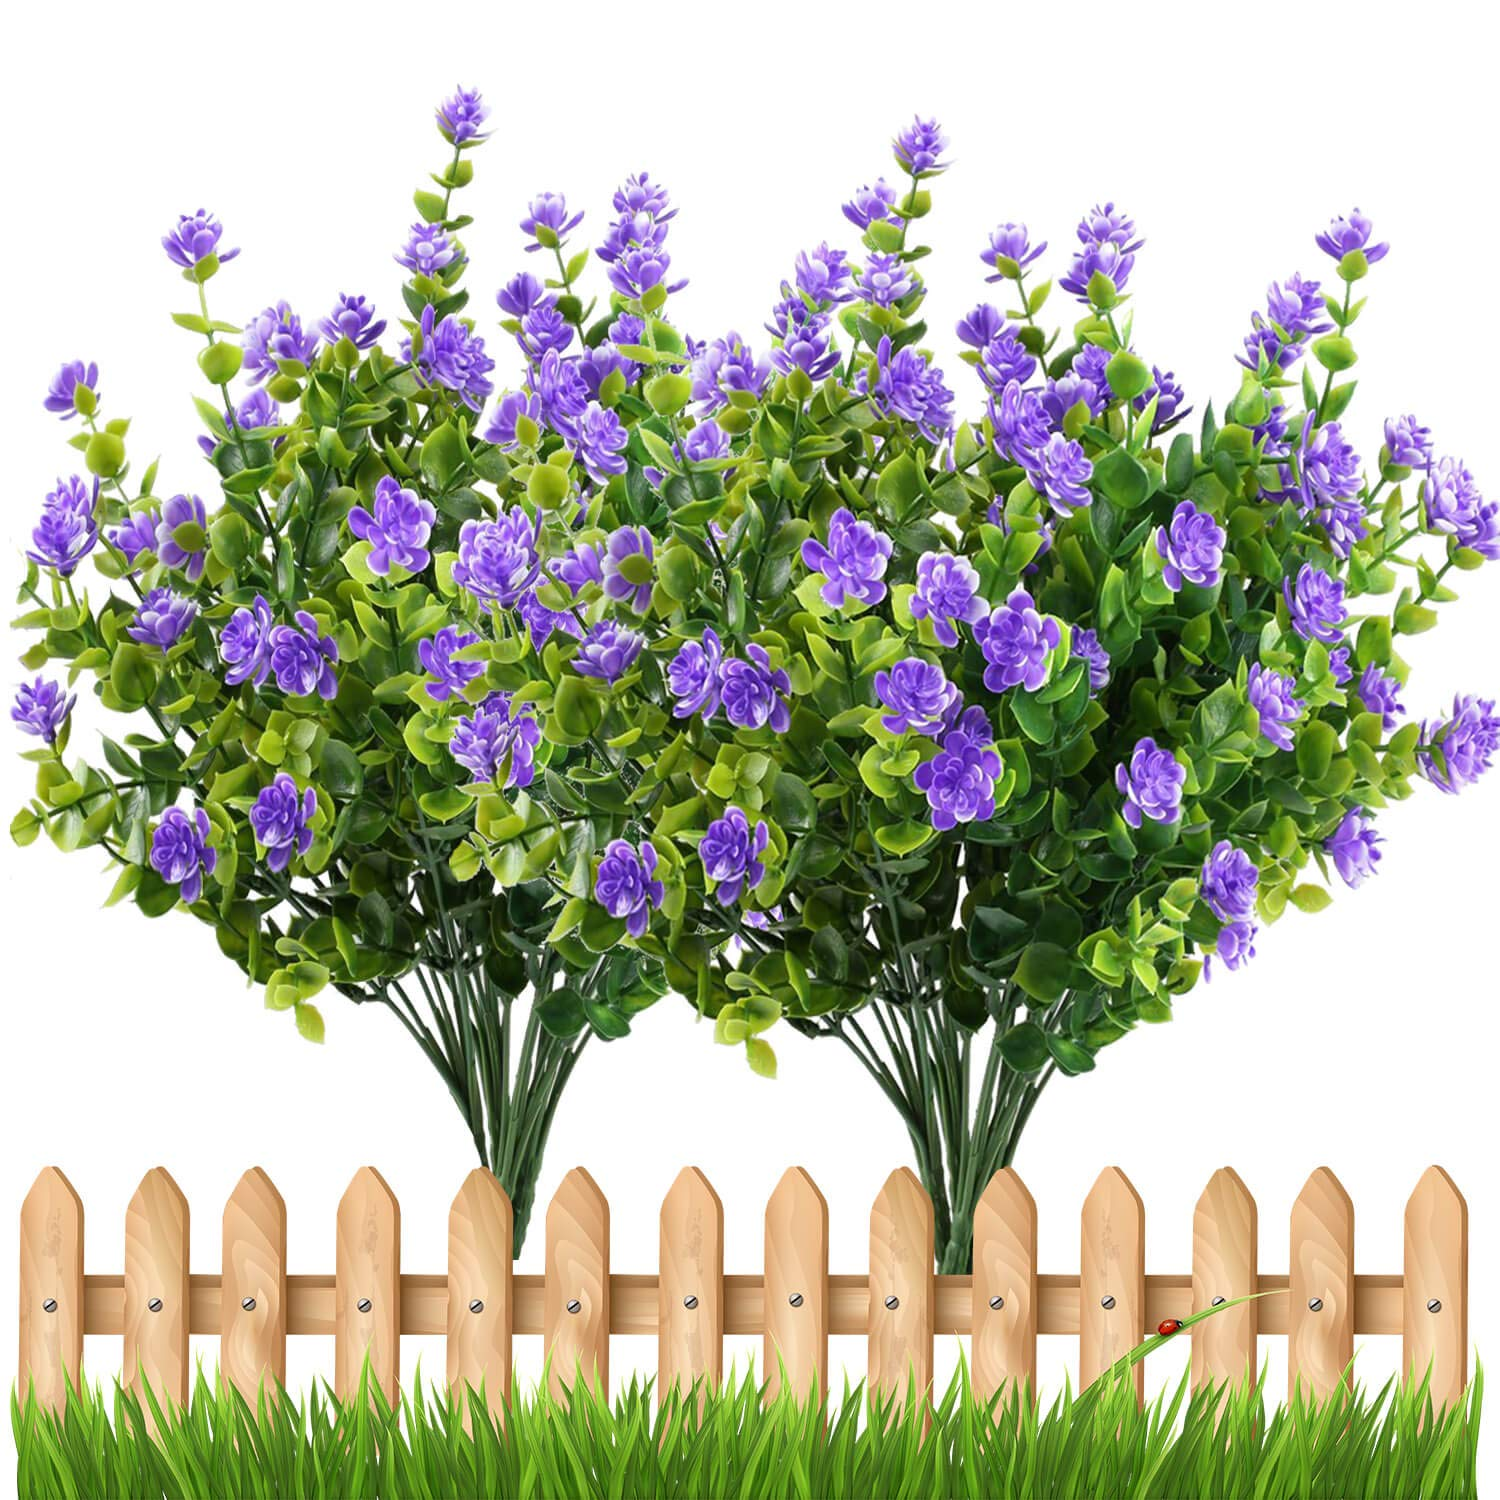 E-HAND-Artificial-Flowers-Outdoor-UV-Resistant-Plants-Shrubs-Boxwood-Plastic-Leaves-Fake-Bushes-Greenery-for-Window-Box-Home-Patio-Yard-Indoor-Garden-Light-Office-Wedding-Decor-Wholesale-4-Pack